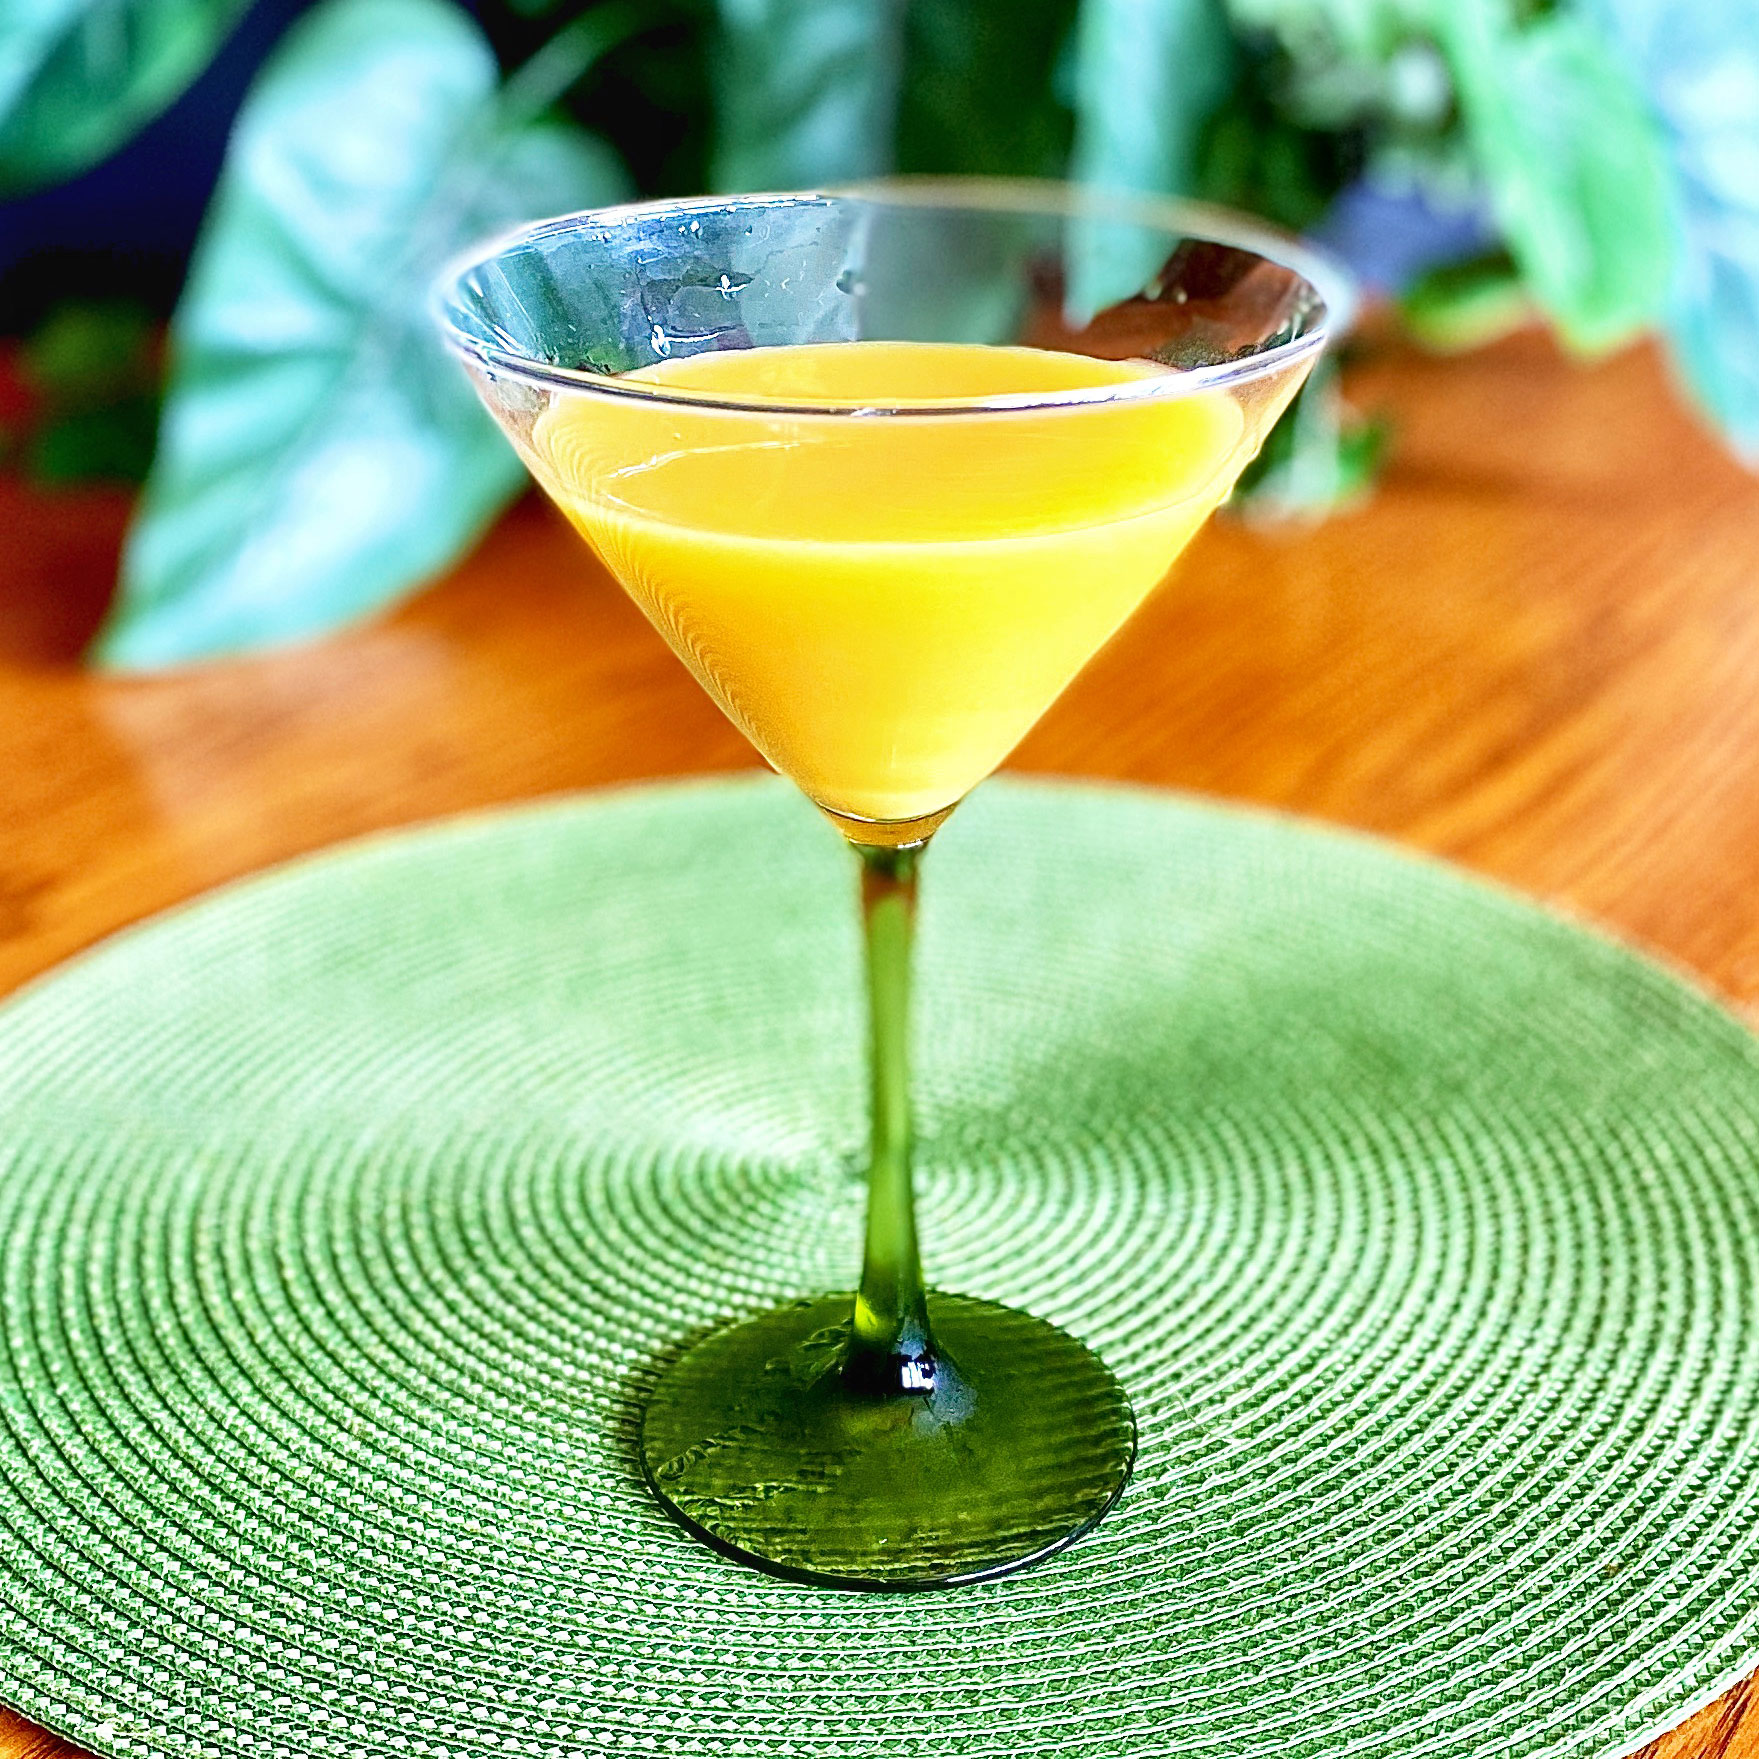 orange drink in martini glass on green placemat